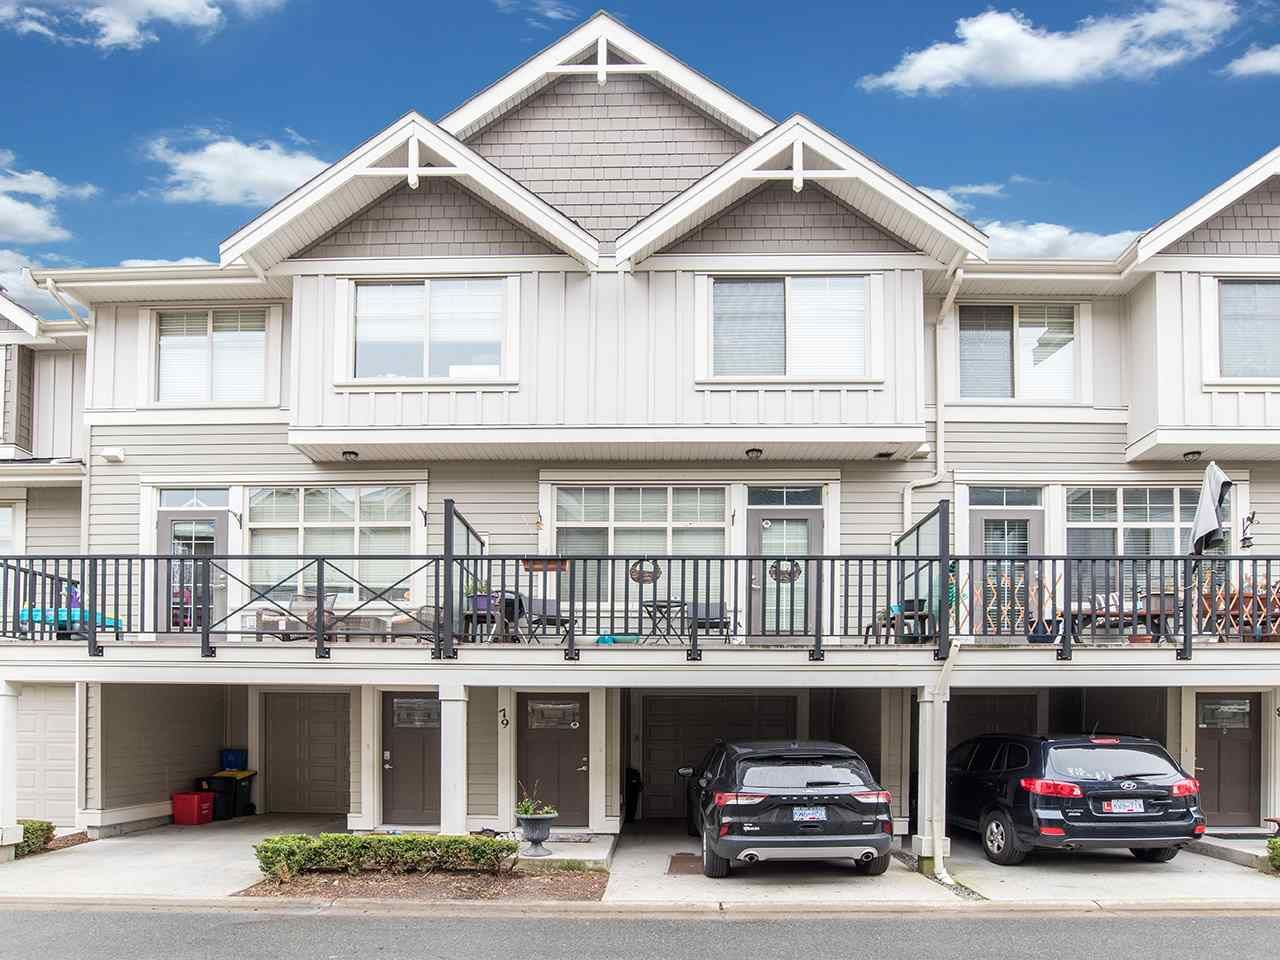 """Main Photo: 79 19525 73 Avenue in Surrey: Clayton Townhouse for sale in """"UPTOWN 2"""" (Cloverdale)  : MLS®# R2556518"""